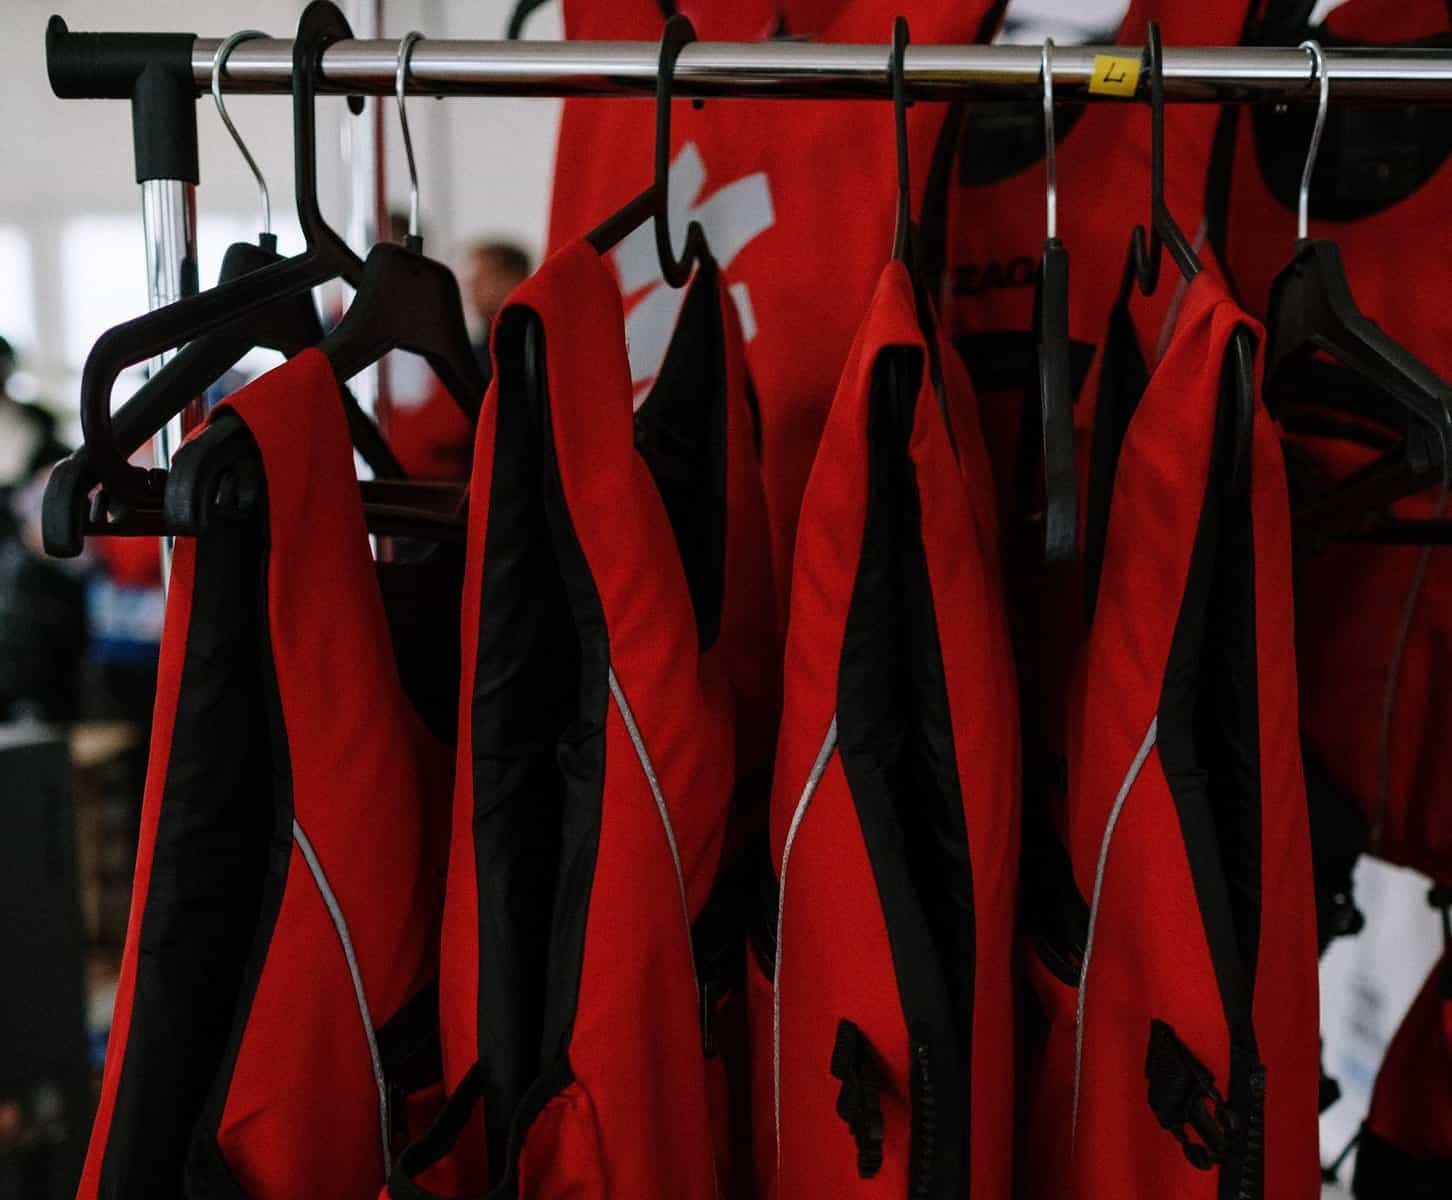 Life Jackets and PFDs Hanging Up